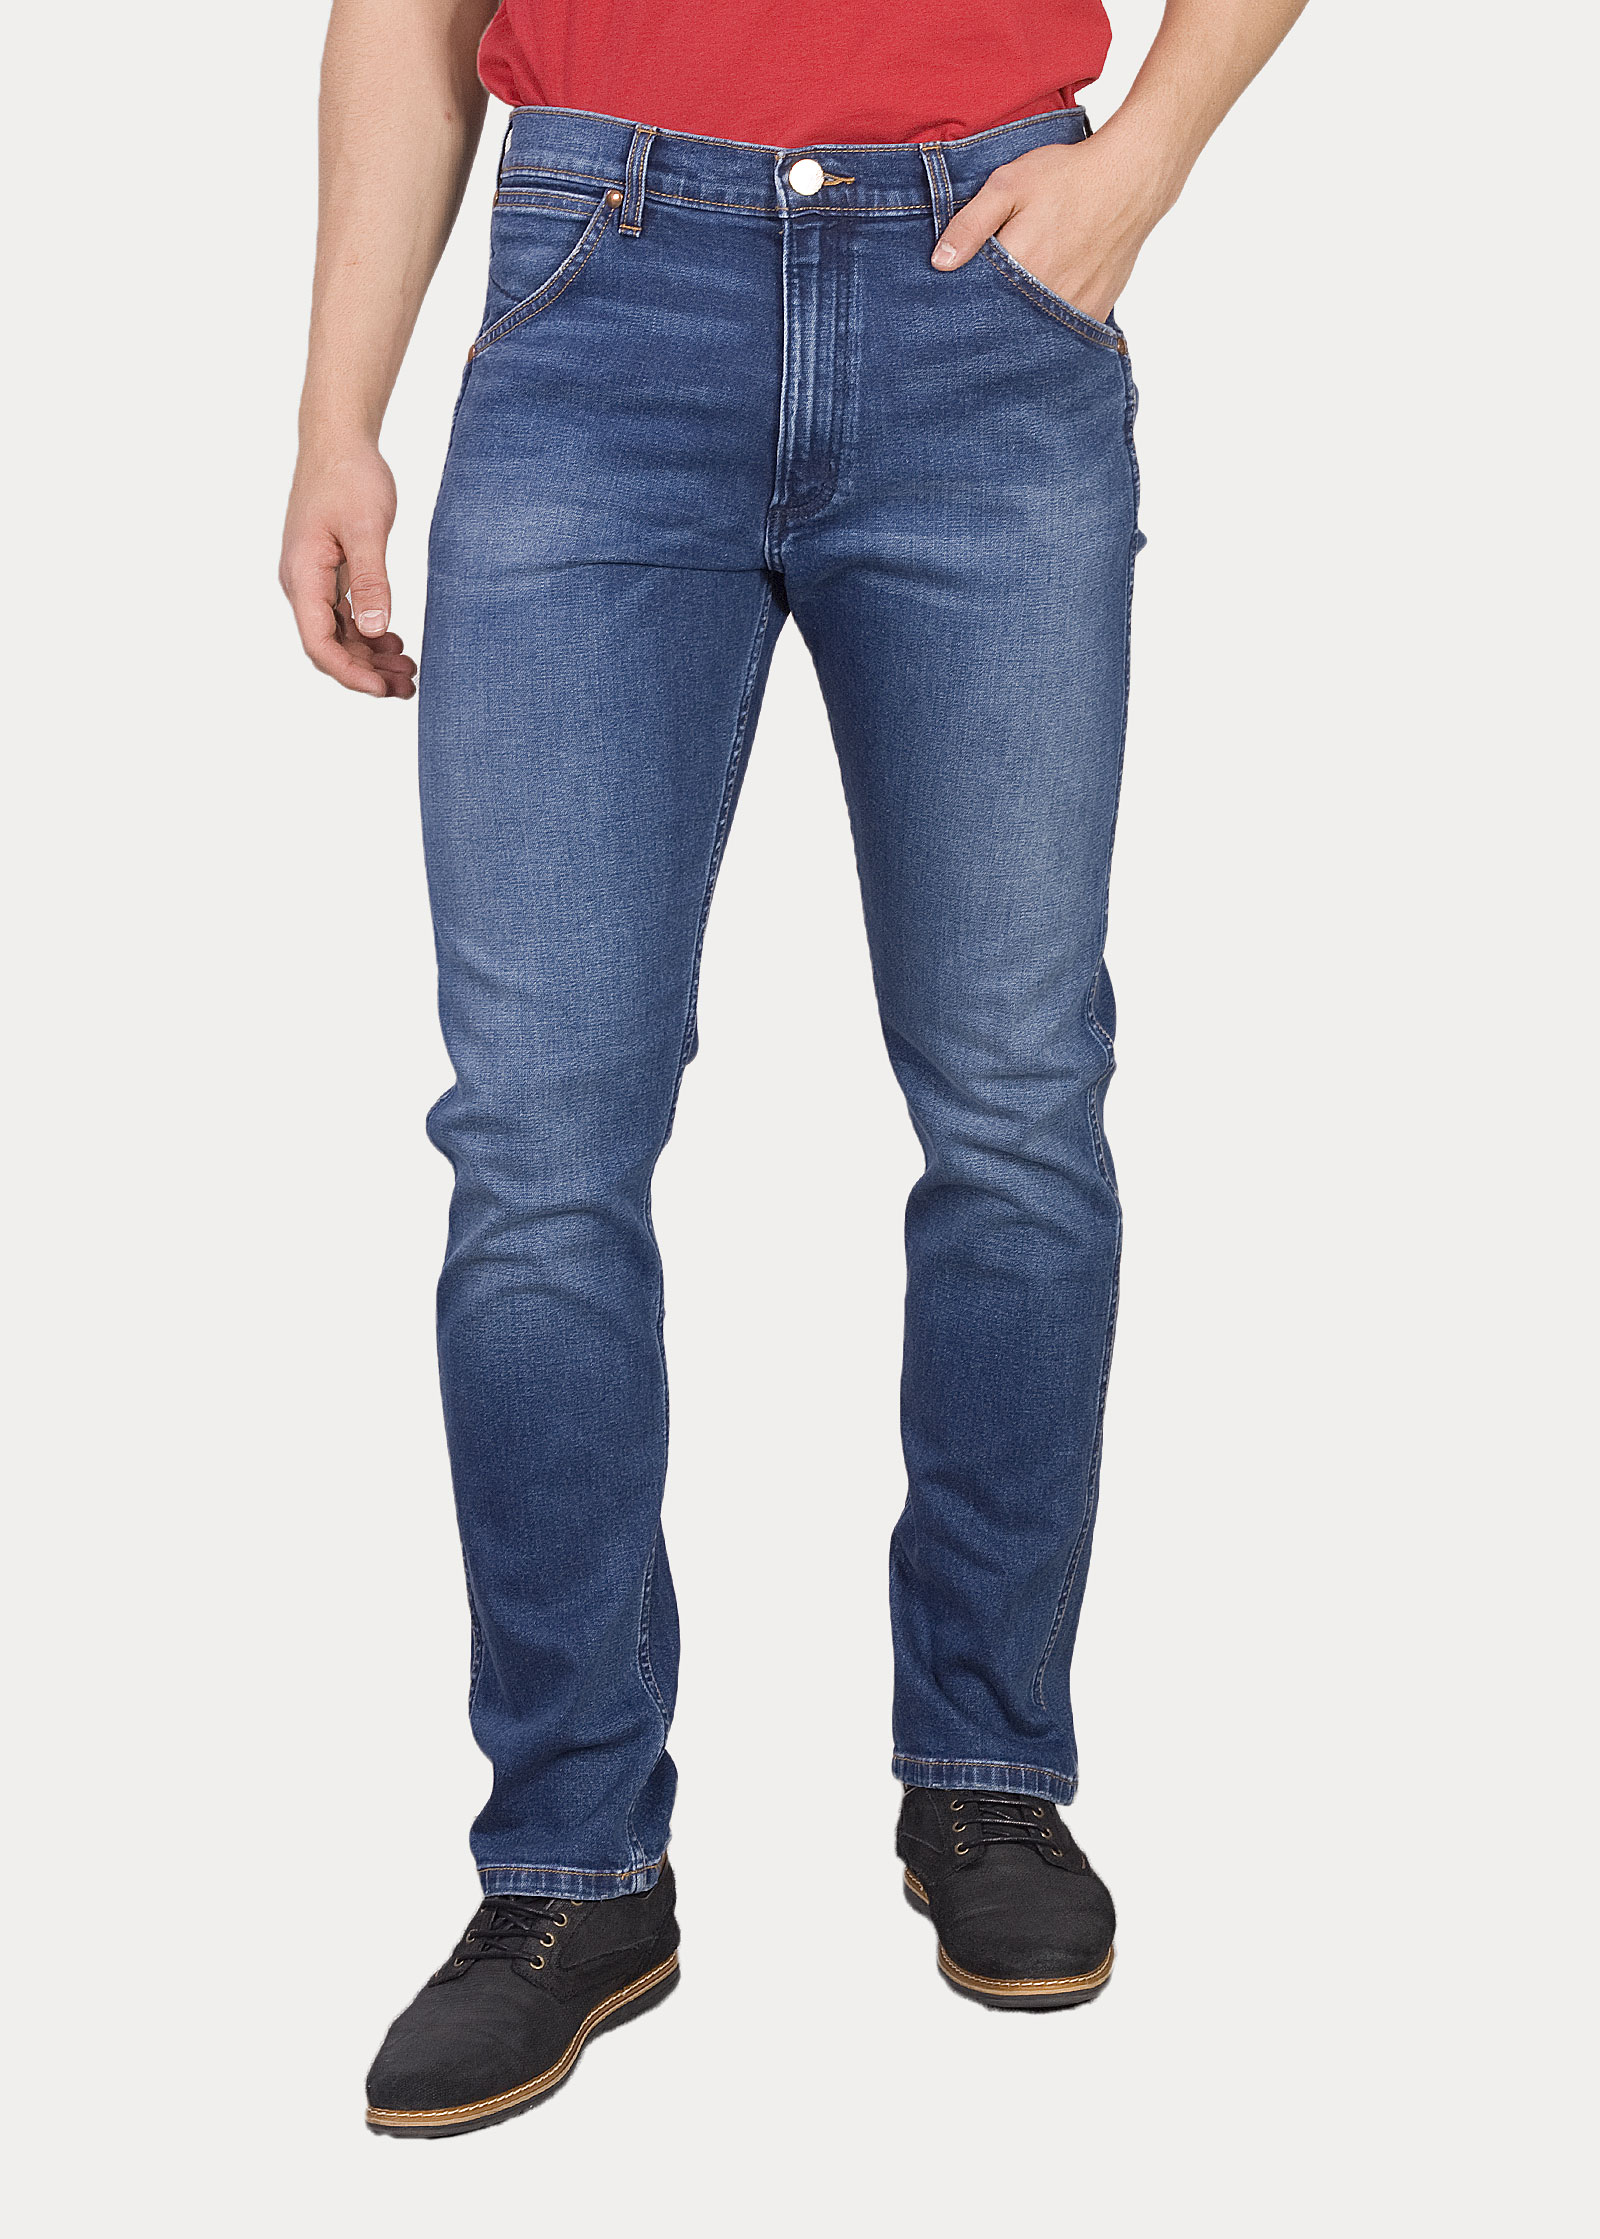 8dbece6a1e4 Men s Jeans Wrangler® Icons 11MWZ Western Slim Jeans - 1 Year ...